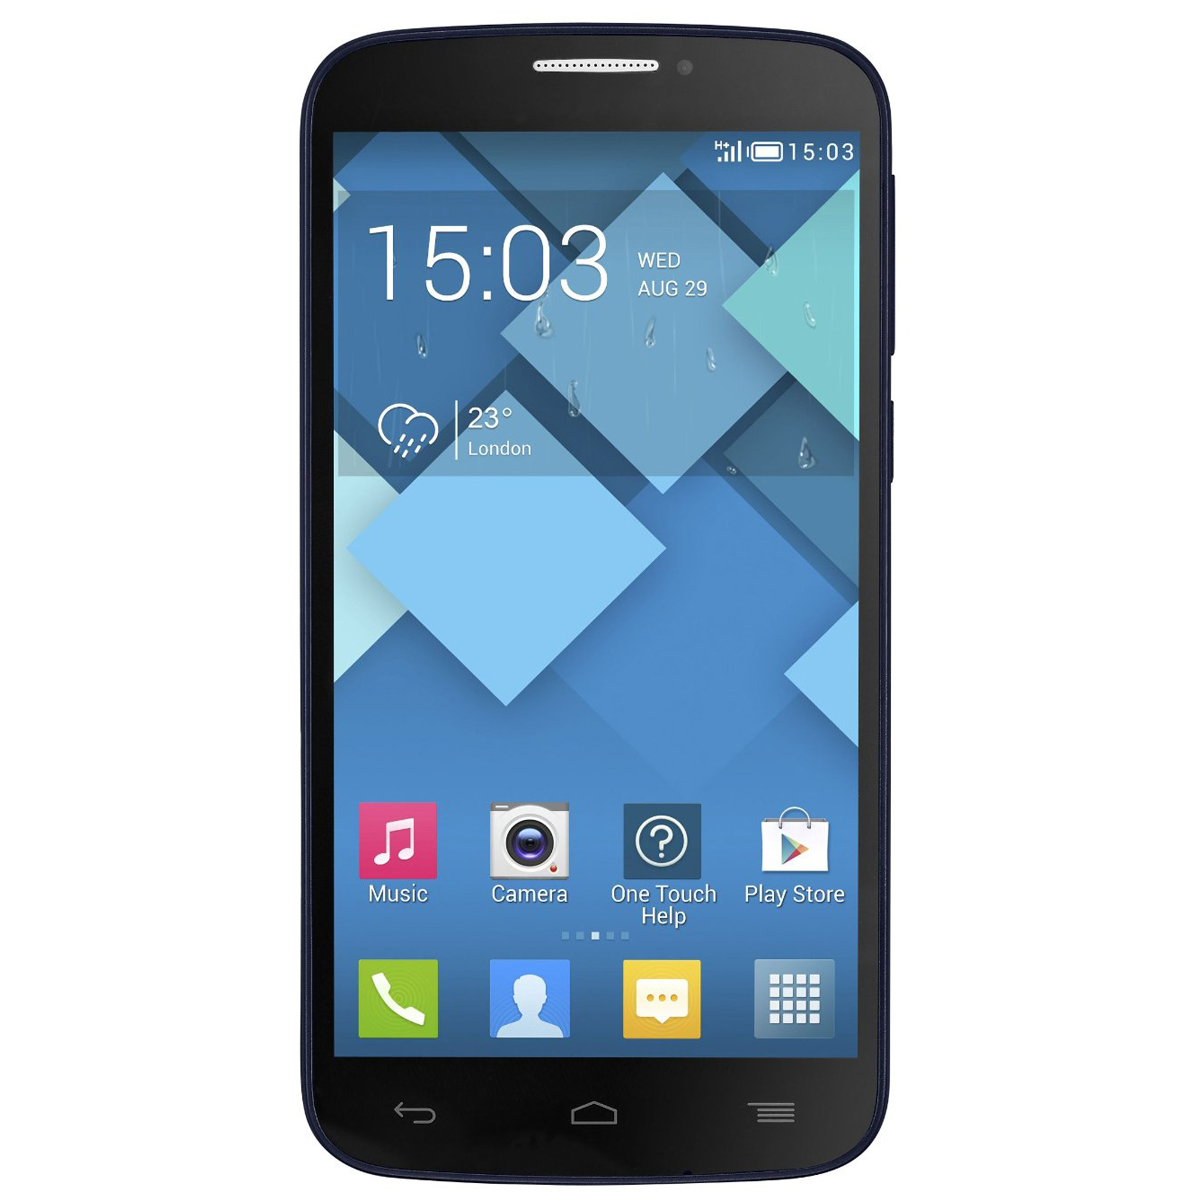 alcatel one touch pop c7 noir mobile smartphone alcatel sur. Black Bedroom Furniture Sets. Home Design Ideas